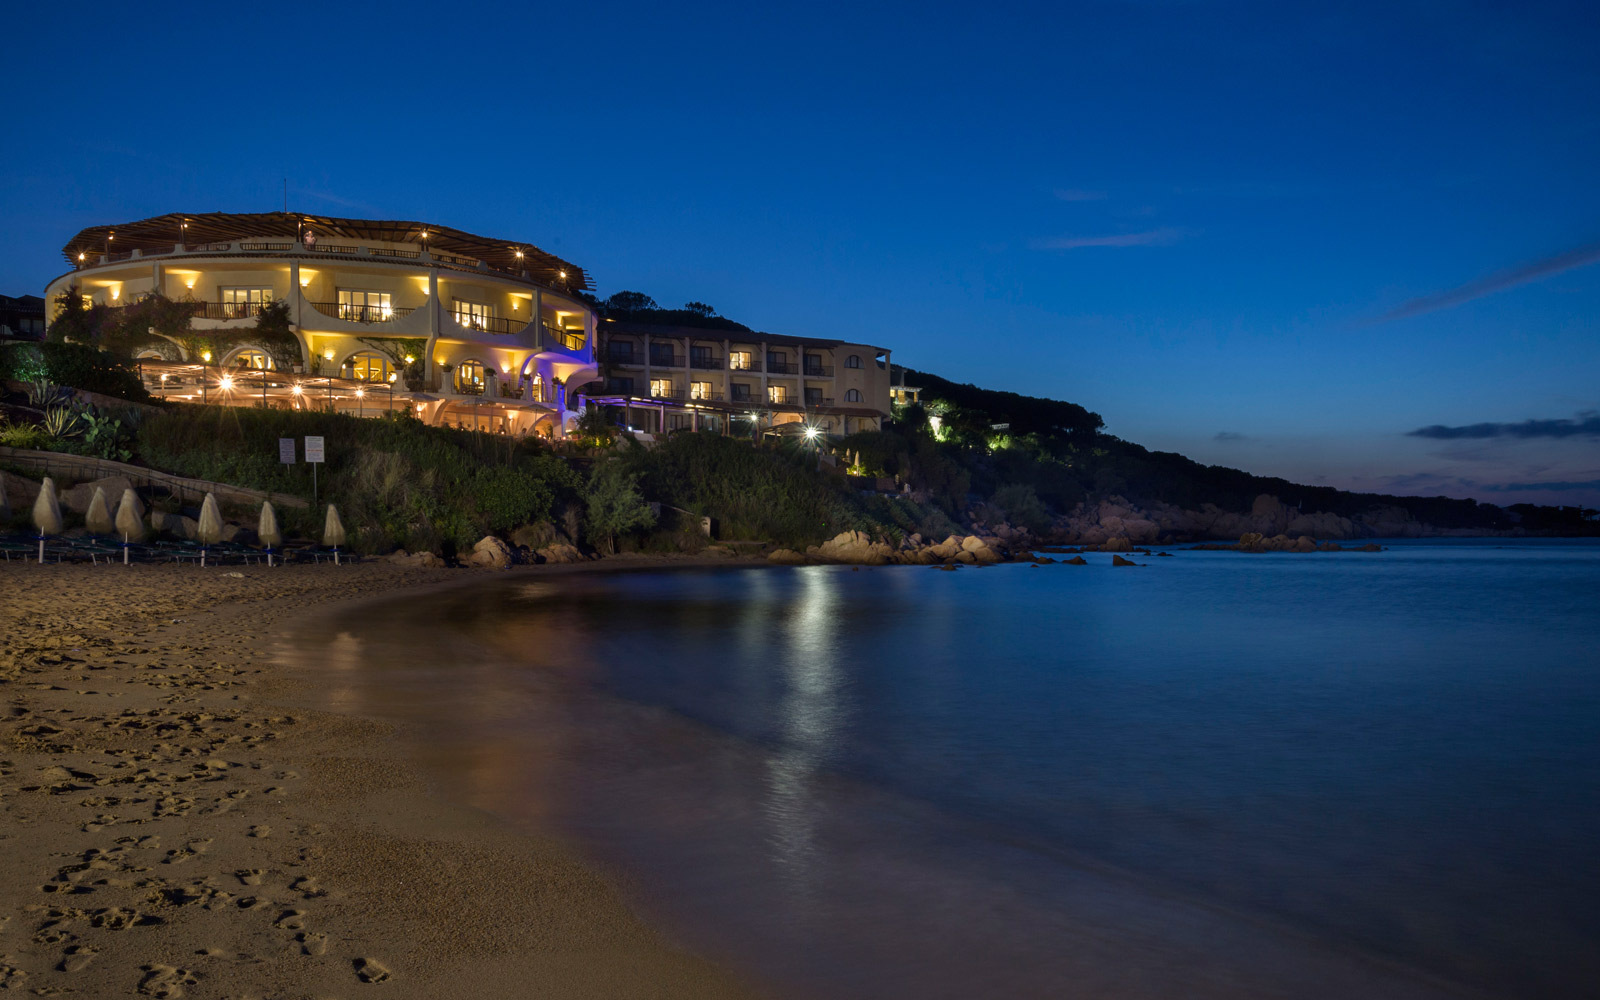 Beach at Night - Club Hotel